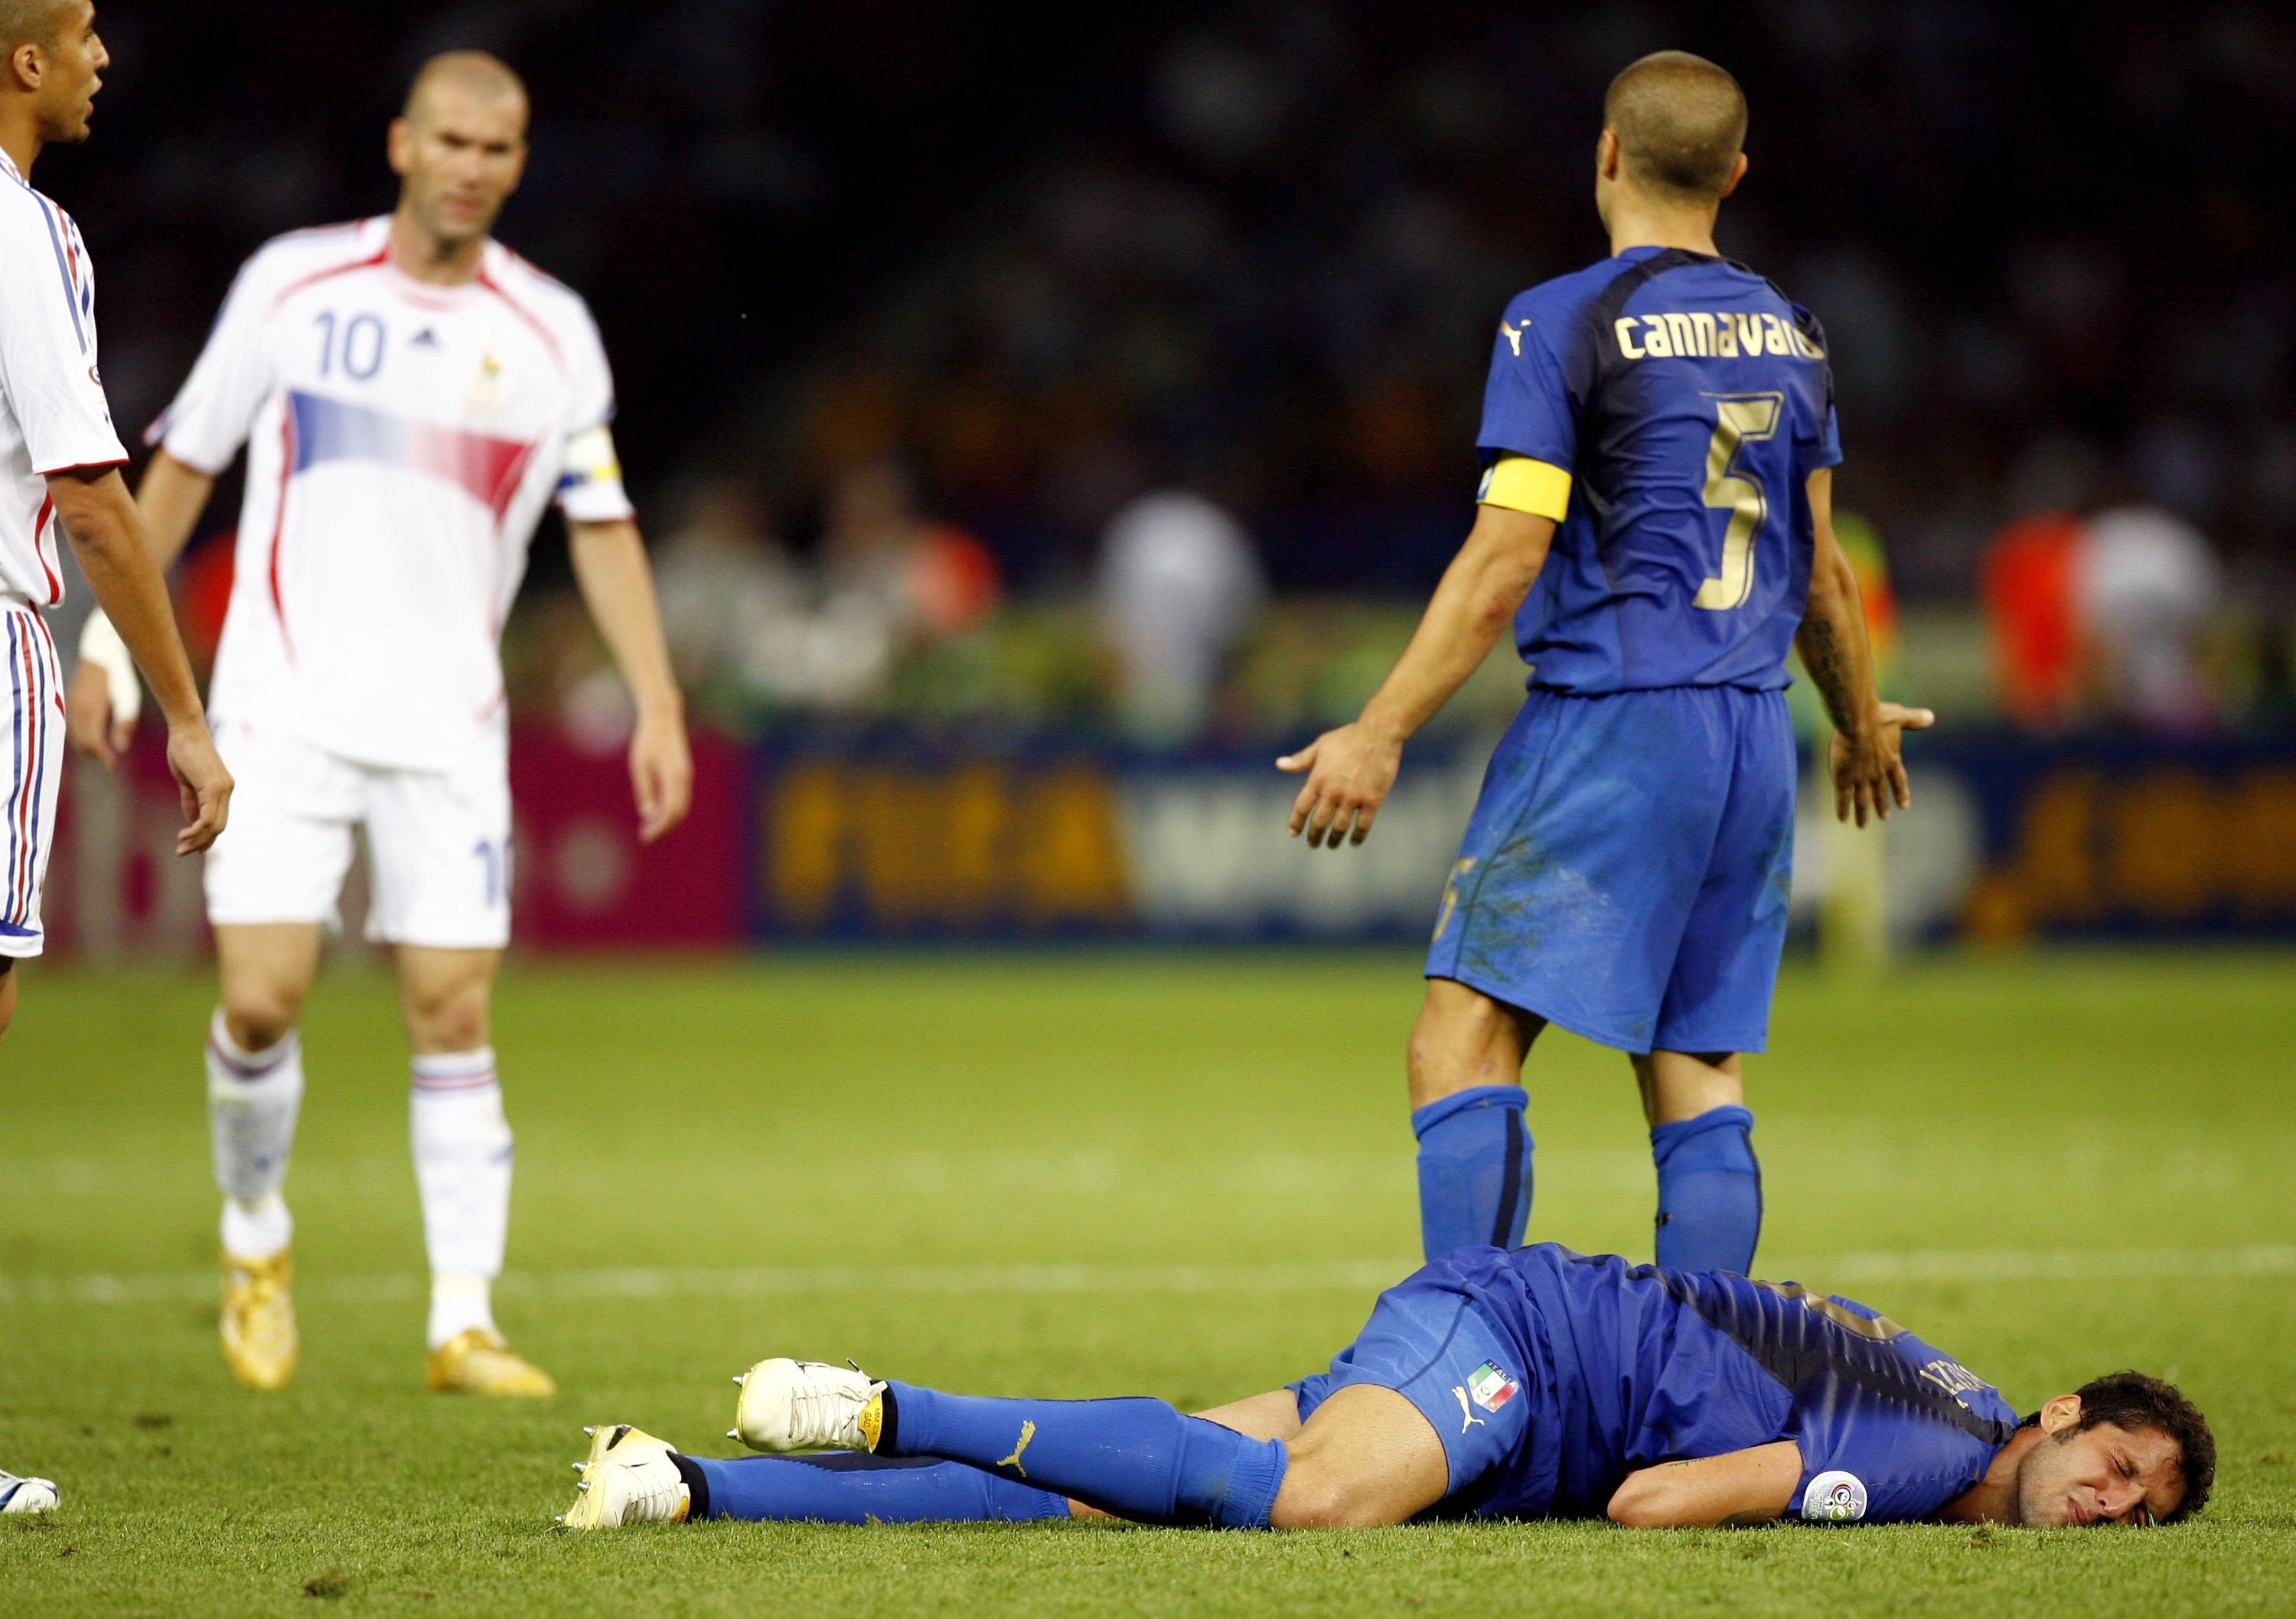 BERLIN - JULY 09:  Fabio Cannavaro (R) of Italy gestures towards Zinedine Zidane #10 (L) of France, whilst Marco Materazzi of Italy lies injured, after being headbutted  in the chest by Zinedine Zidane of France during the FIFA World Cup Germany 2006 Fina